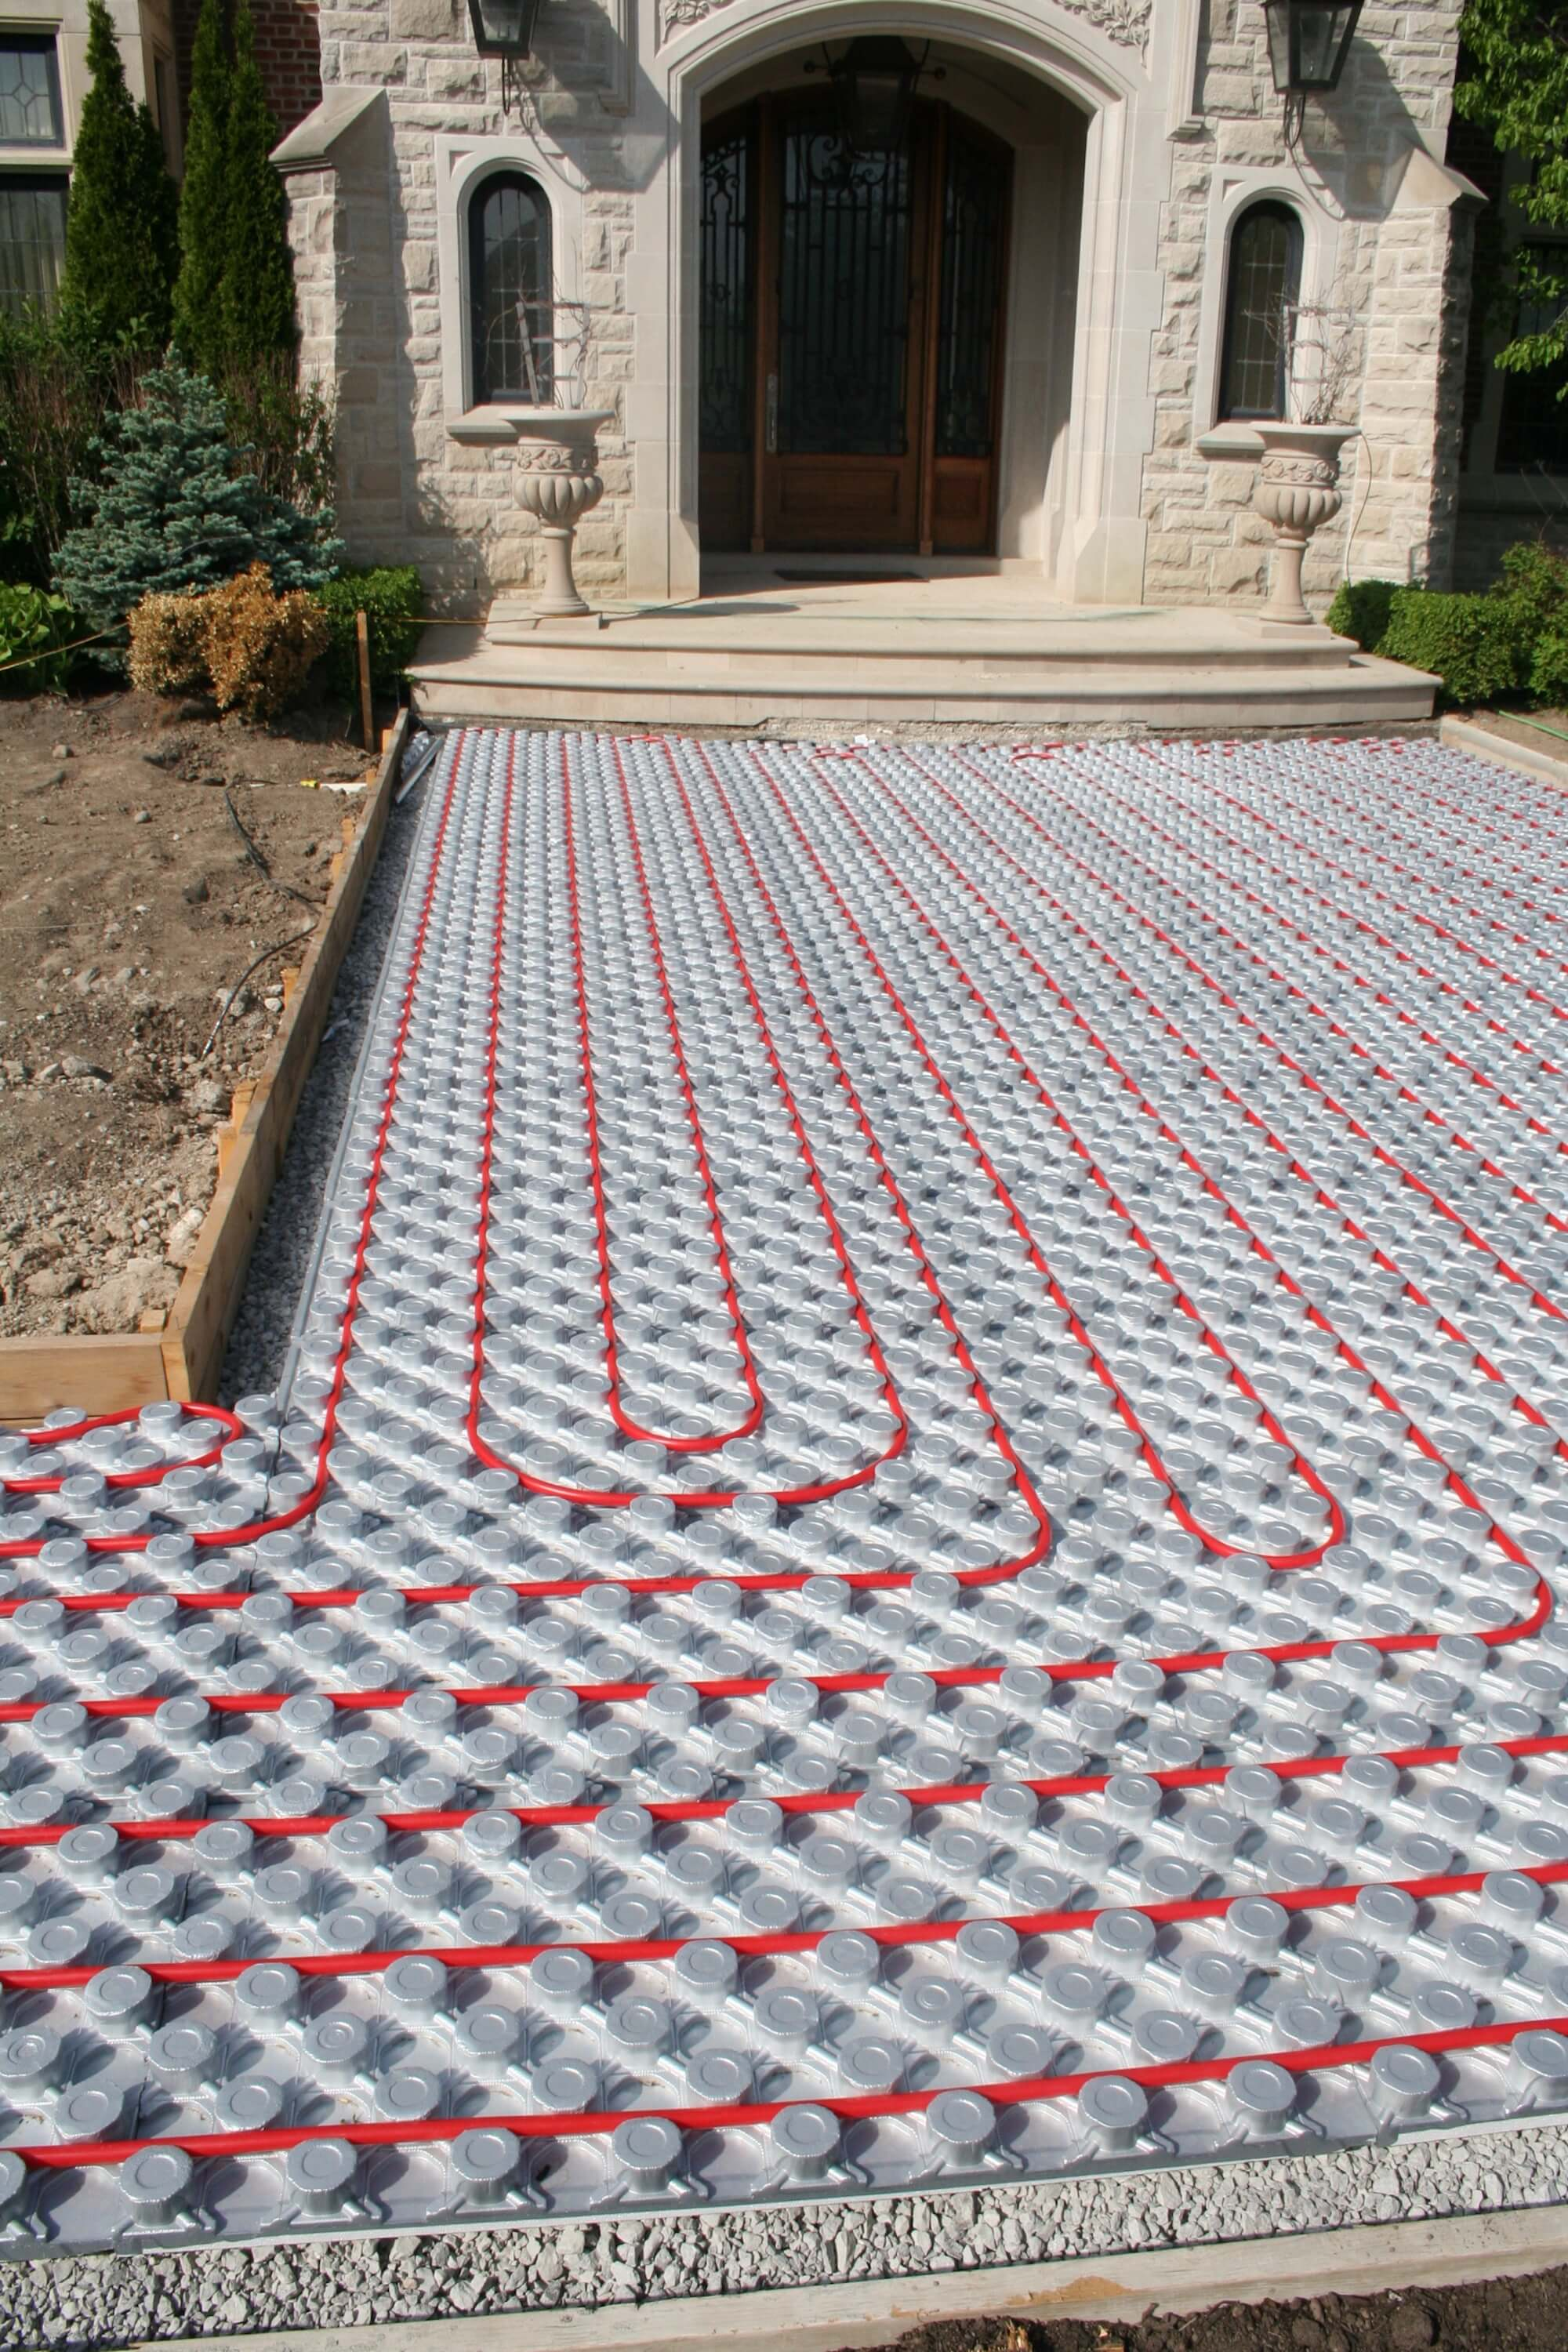 Driveway Amp Walkways Outdoor Radiant Heating Panels Amvic